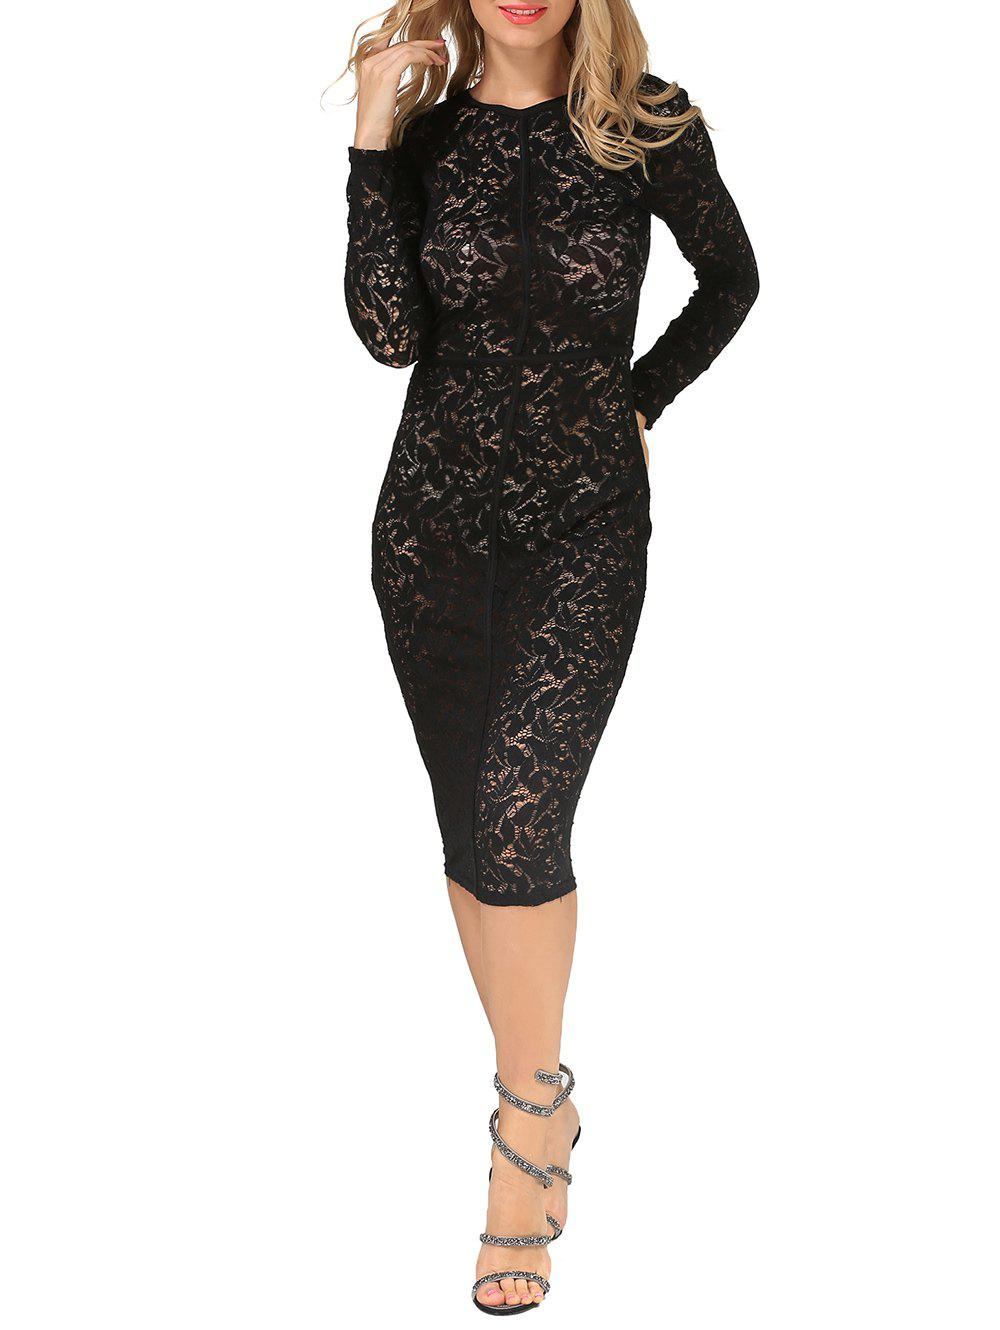 New Sheer Bodycon Long Sleeve Long Tight Lace Sheath Dress